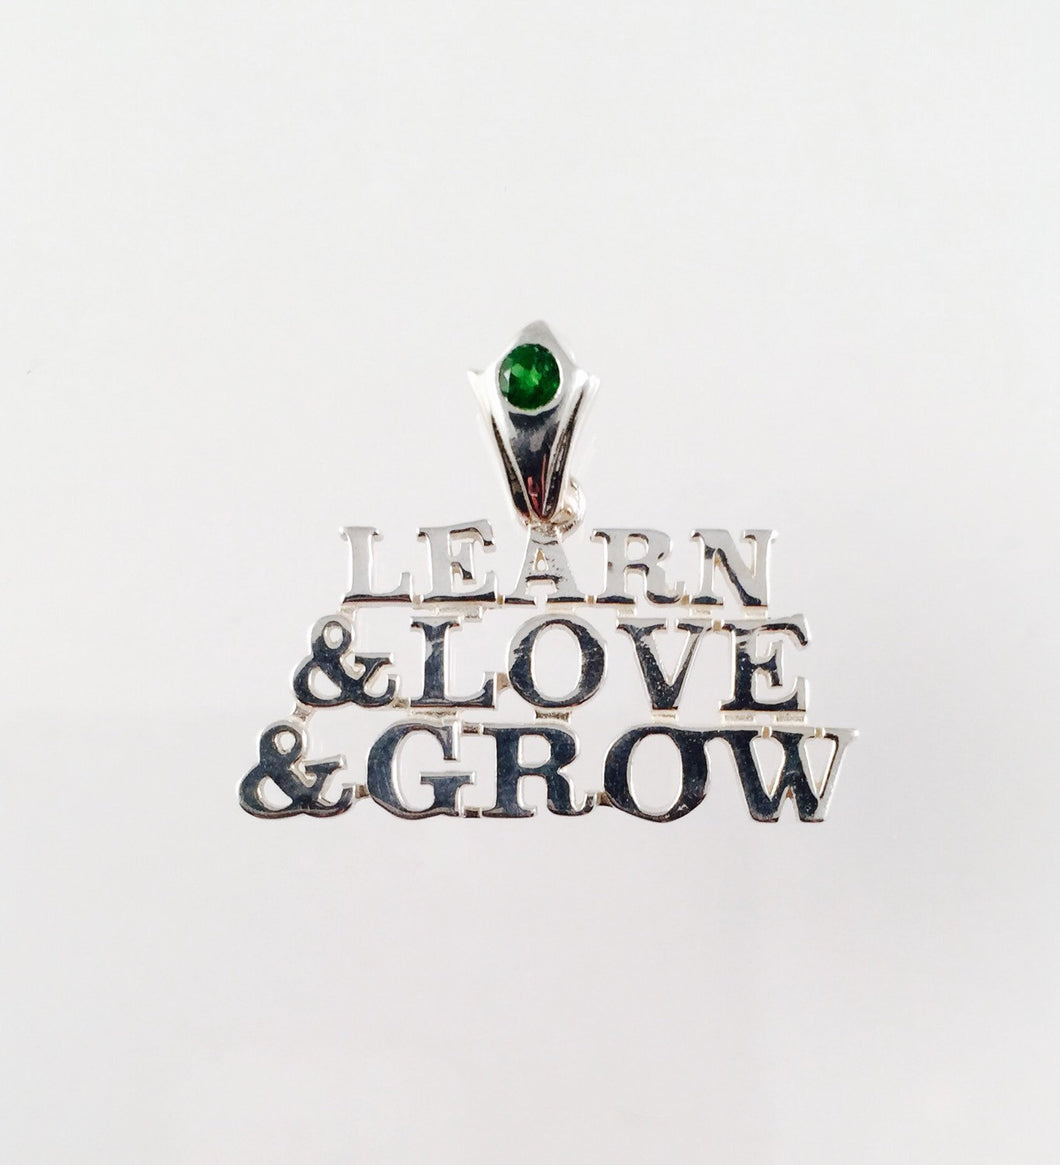 Grateful Dead, Sterling Silver Learn, Love & Grow Pendant with Custom Tsavorite (green garnet) Bail